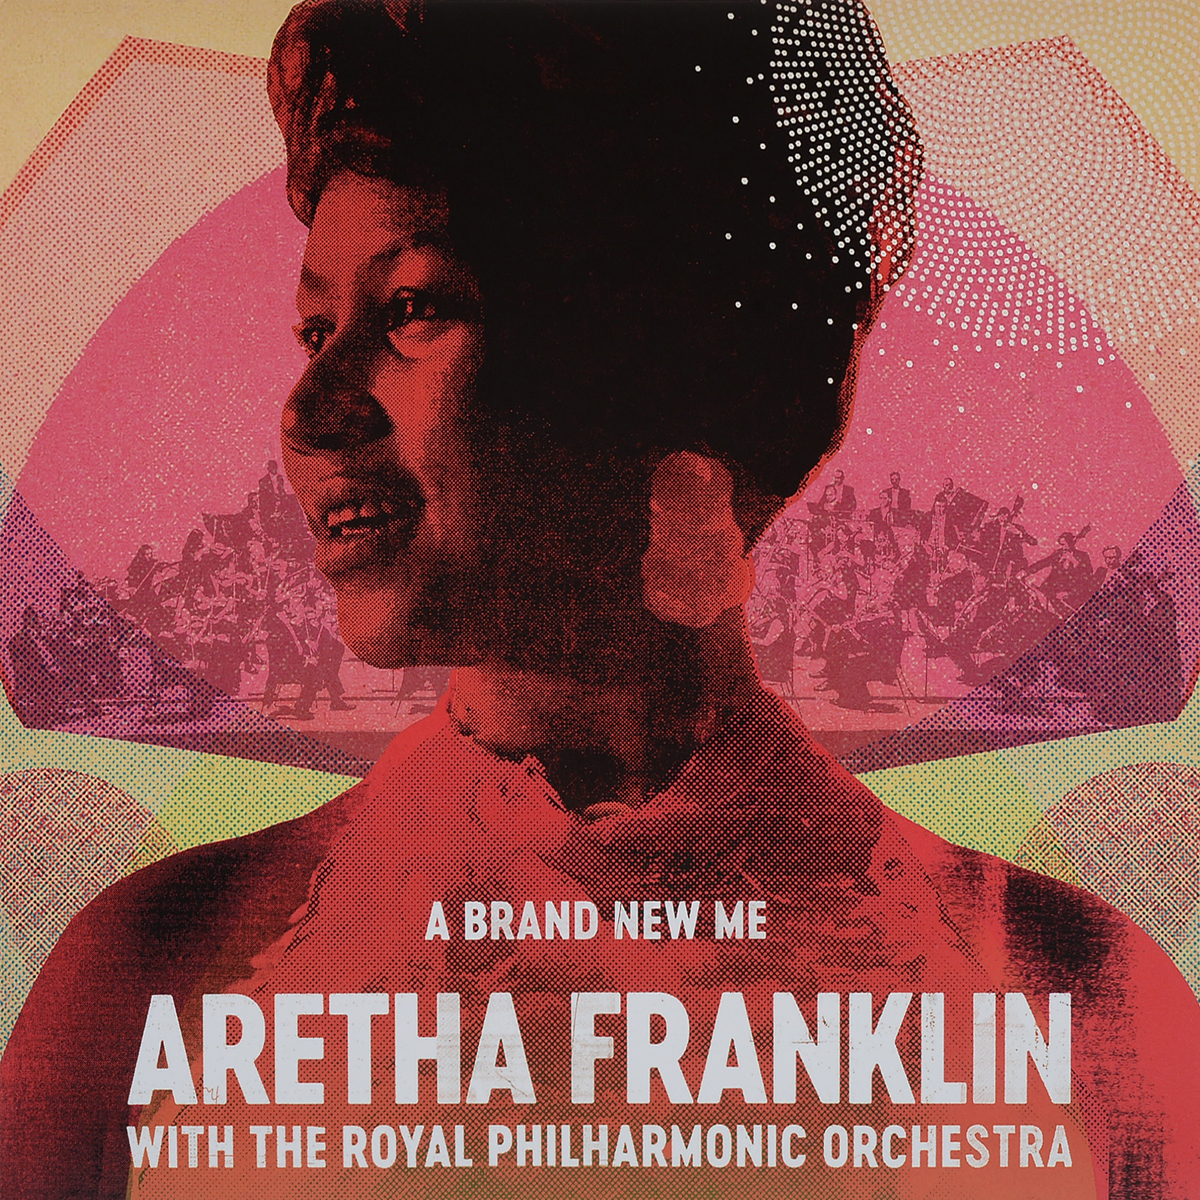 Арета Фрэнклин,The Royal Philharmonic Orchestra Aretha Franklin, Royal Philharmonic Orchestra. The A Brand New Me (LP) арета фрэнклин aretha franklin sings the great diva classics lp